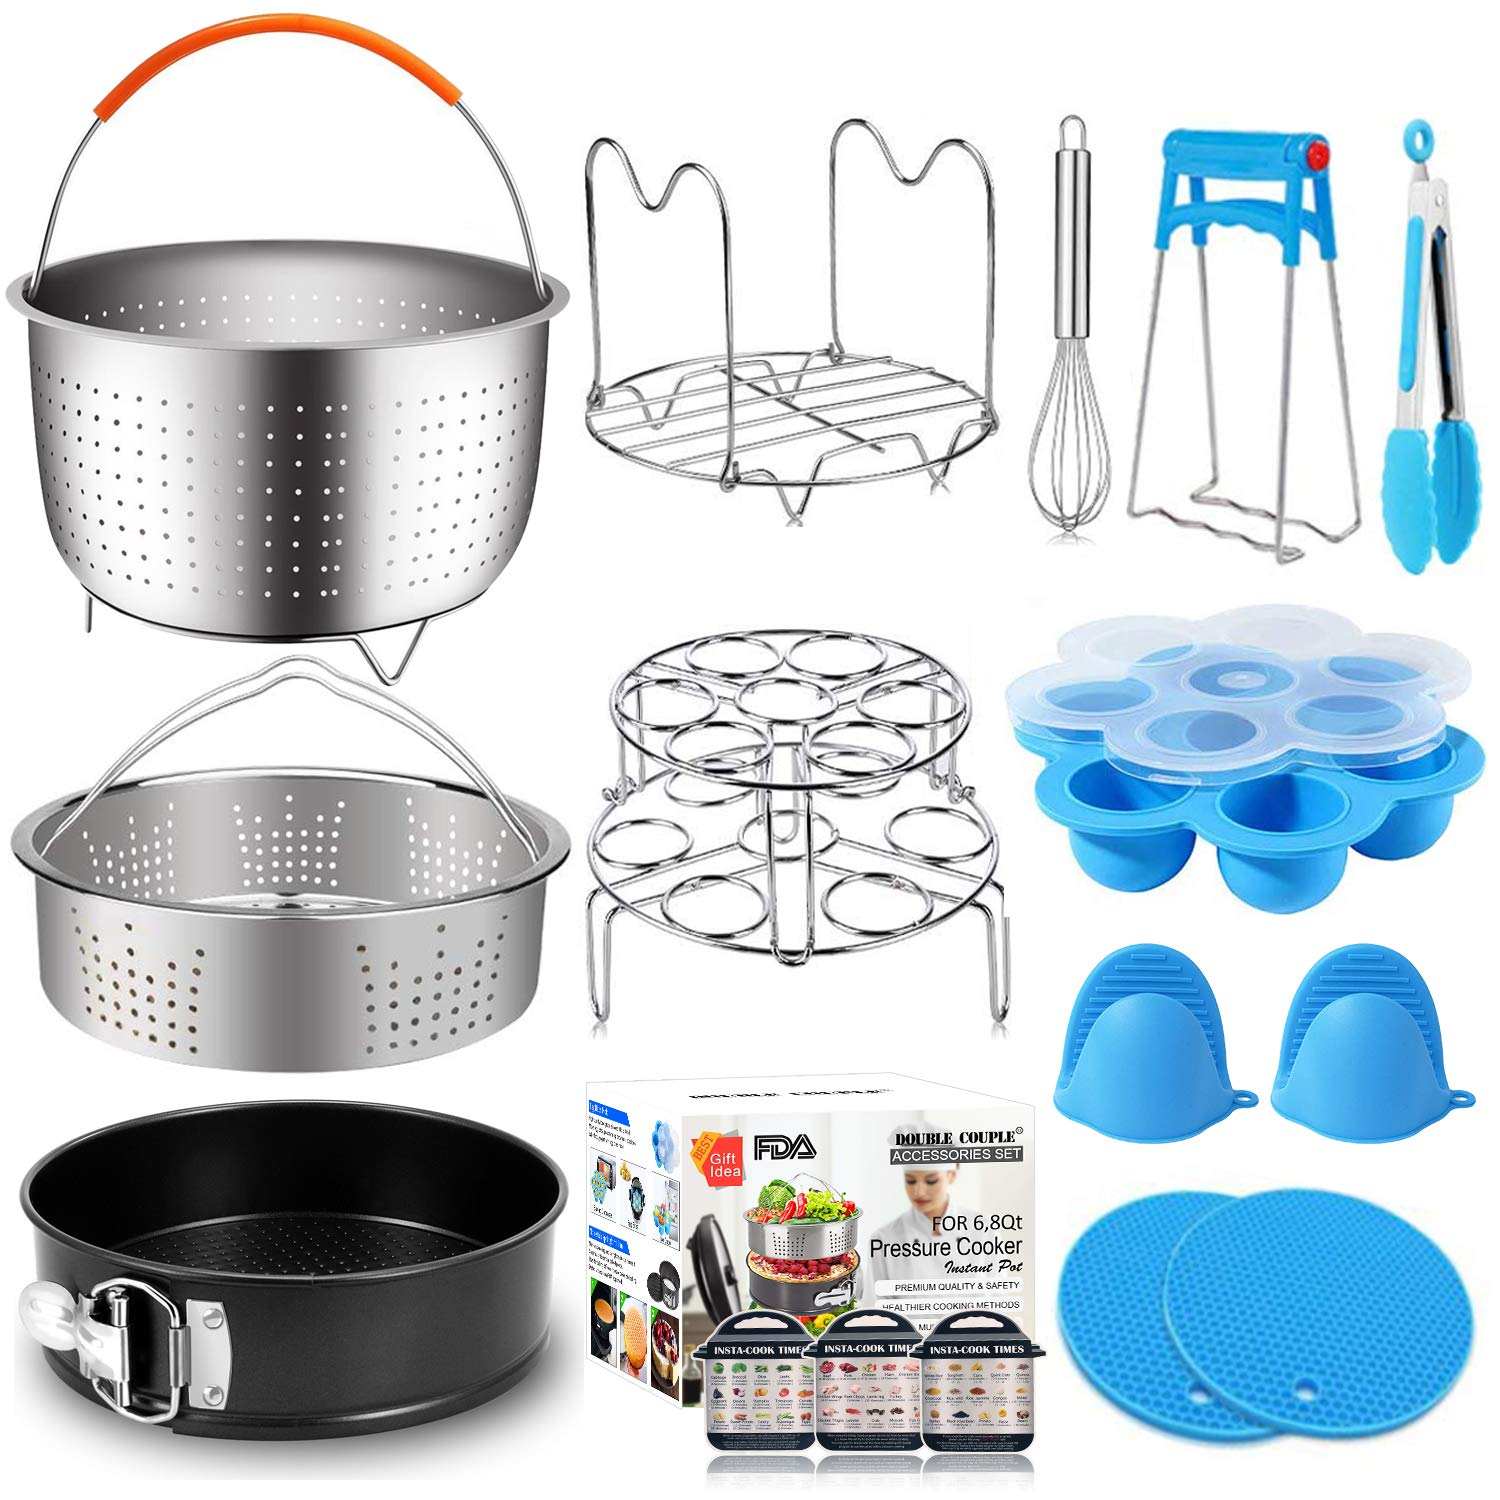 17 Pcs Instant Pot Accessories 6,8 Qt Pressure Cooker Accessories Steamer Basket, Springform Pan, Silicone Egg Bites Molds, Egg Steamer Rack